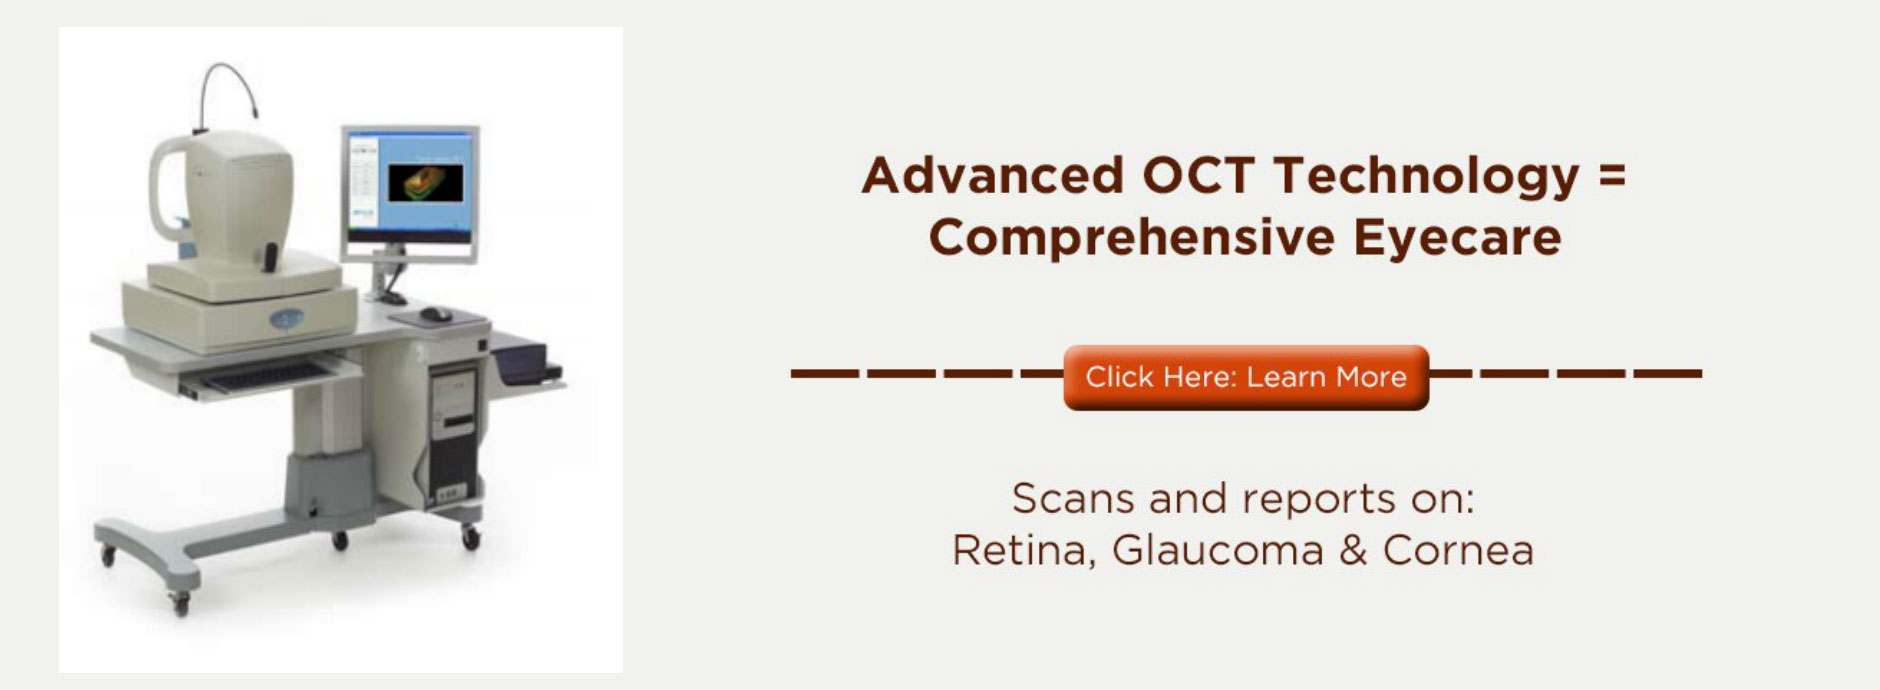 Advanced OCT Technology at Soto Eye Center in Sarasota, Florida